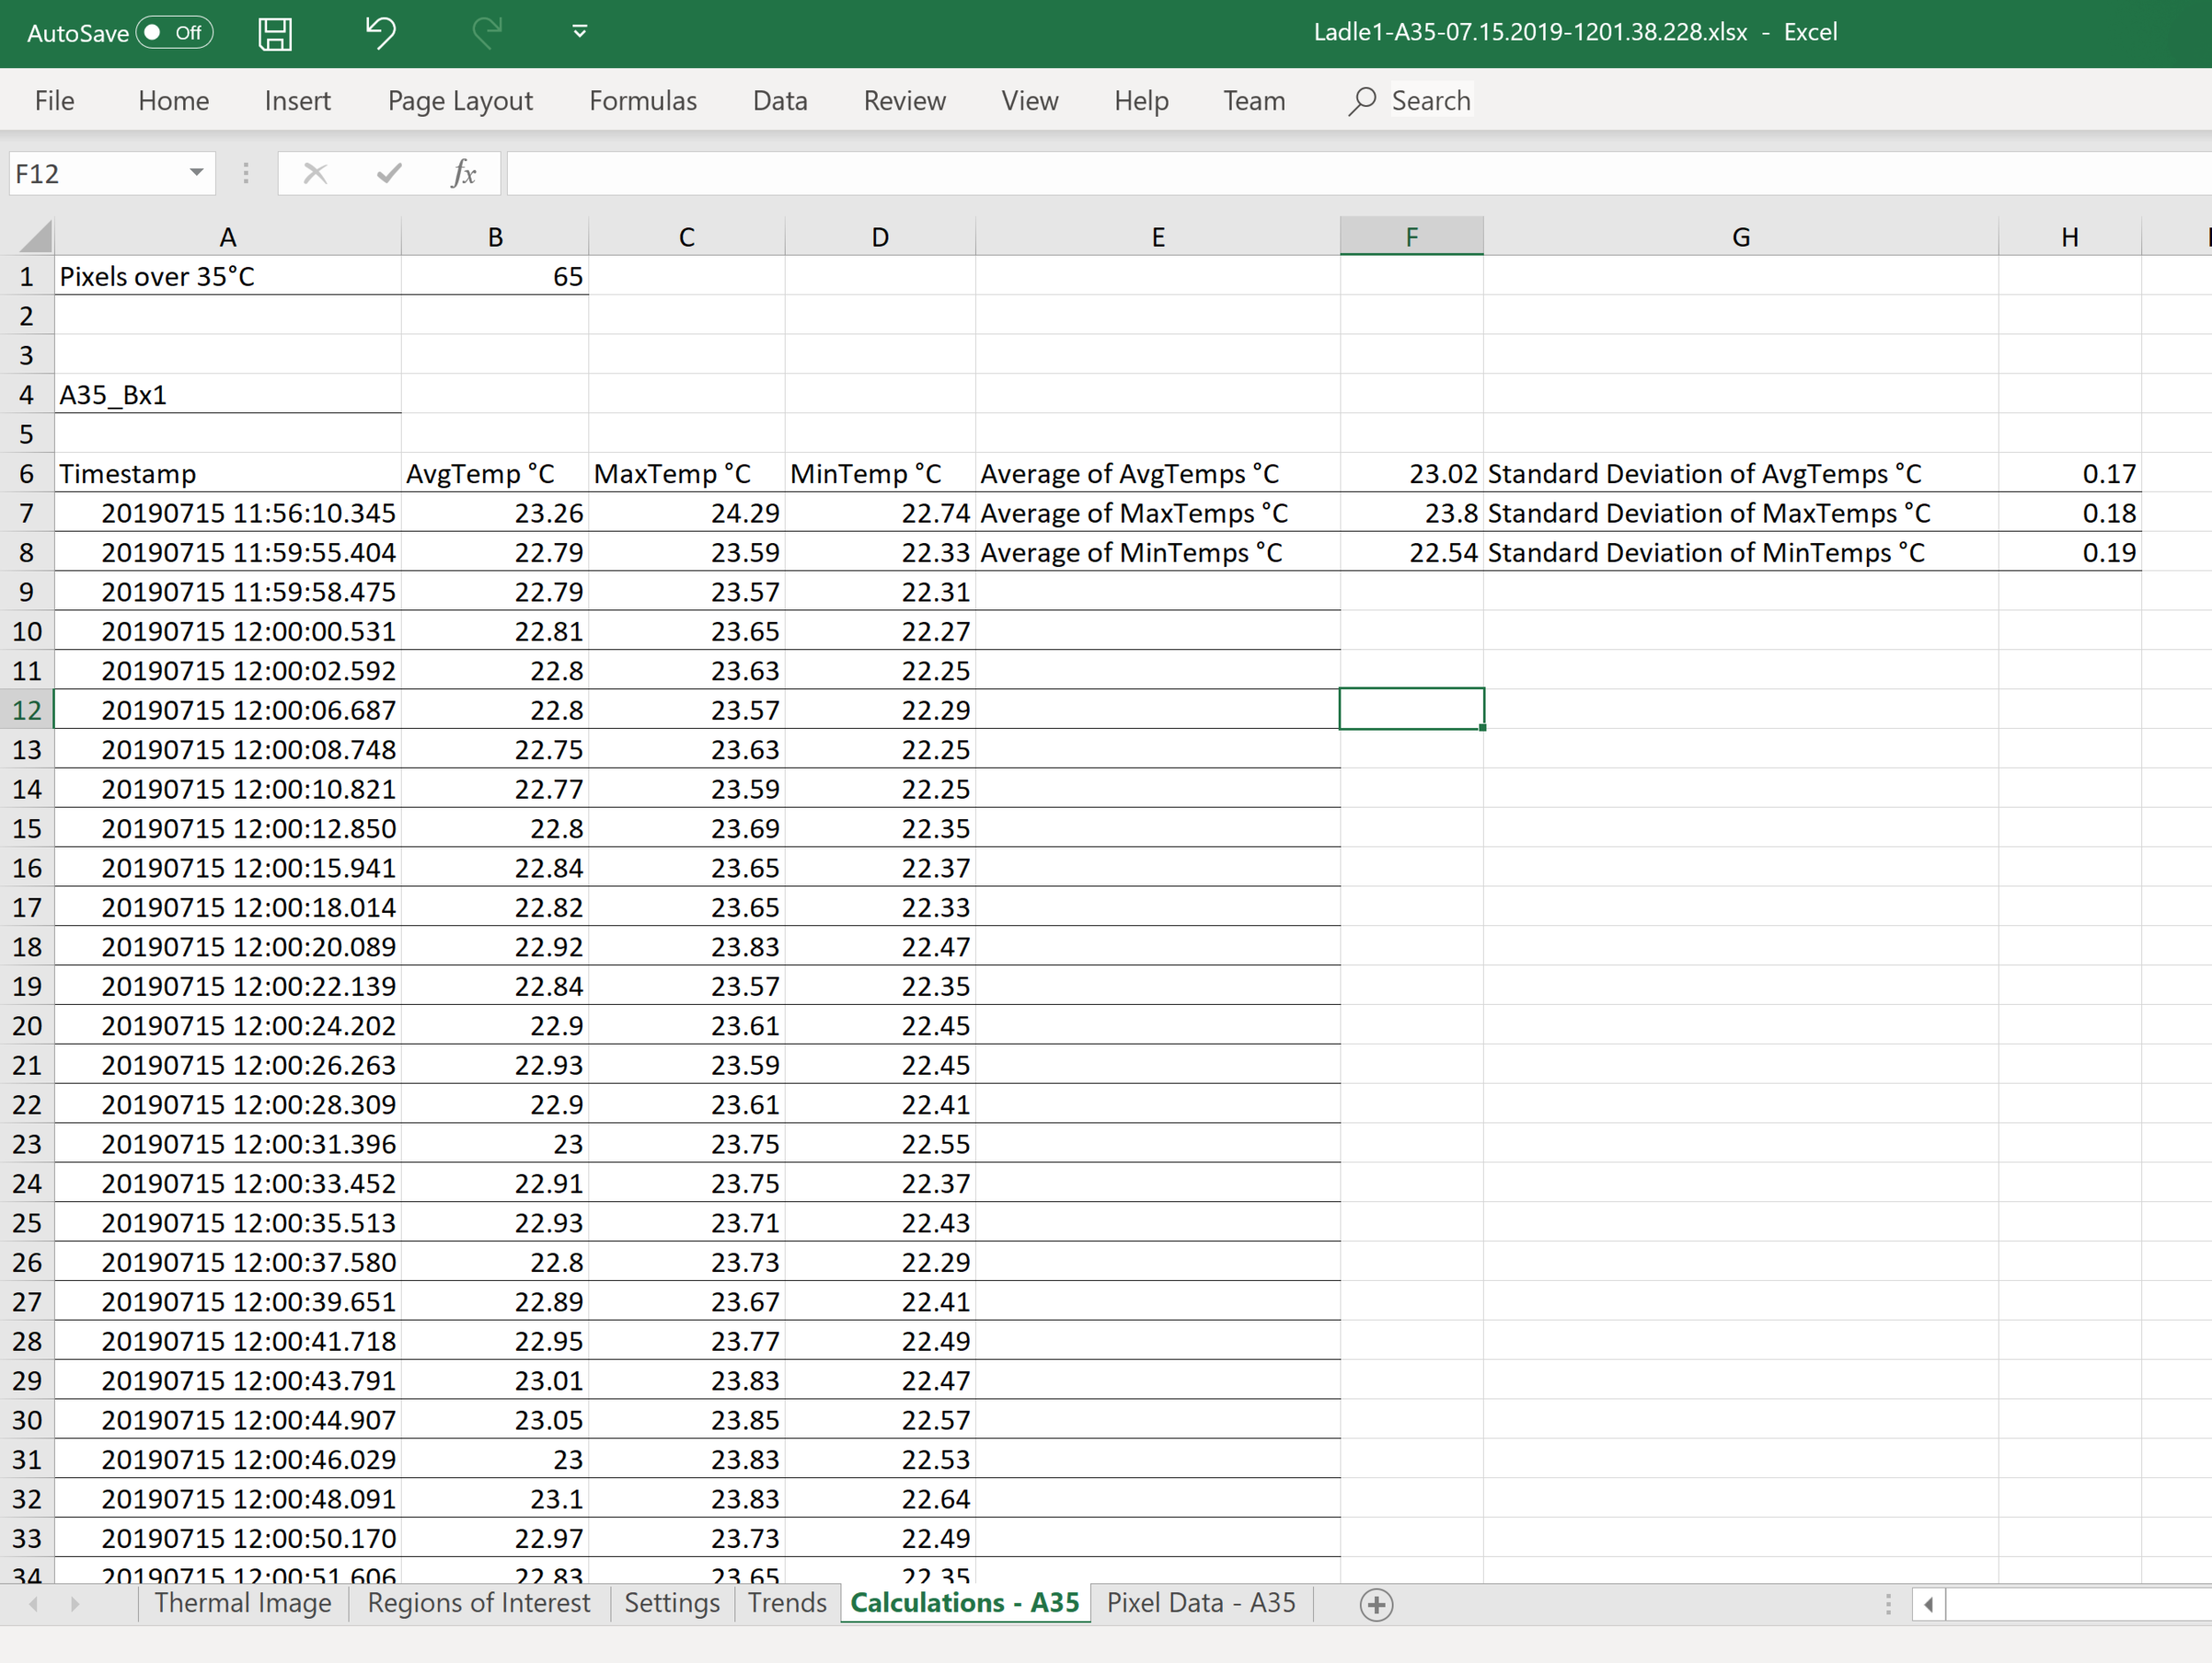 Excel report showing calculations